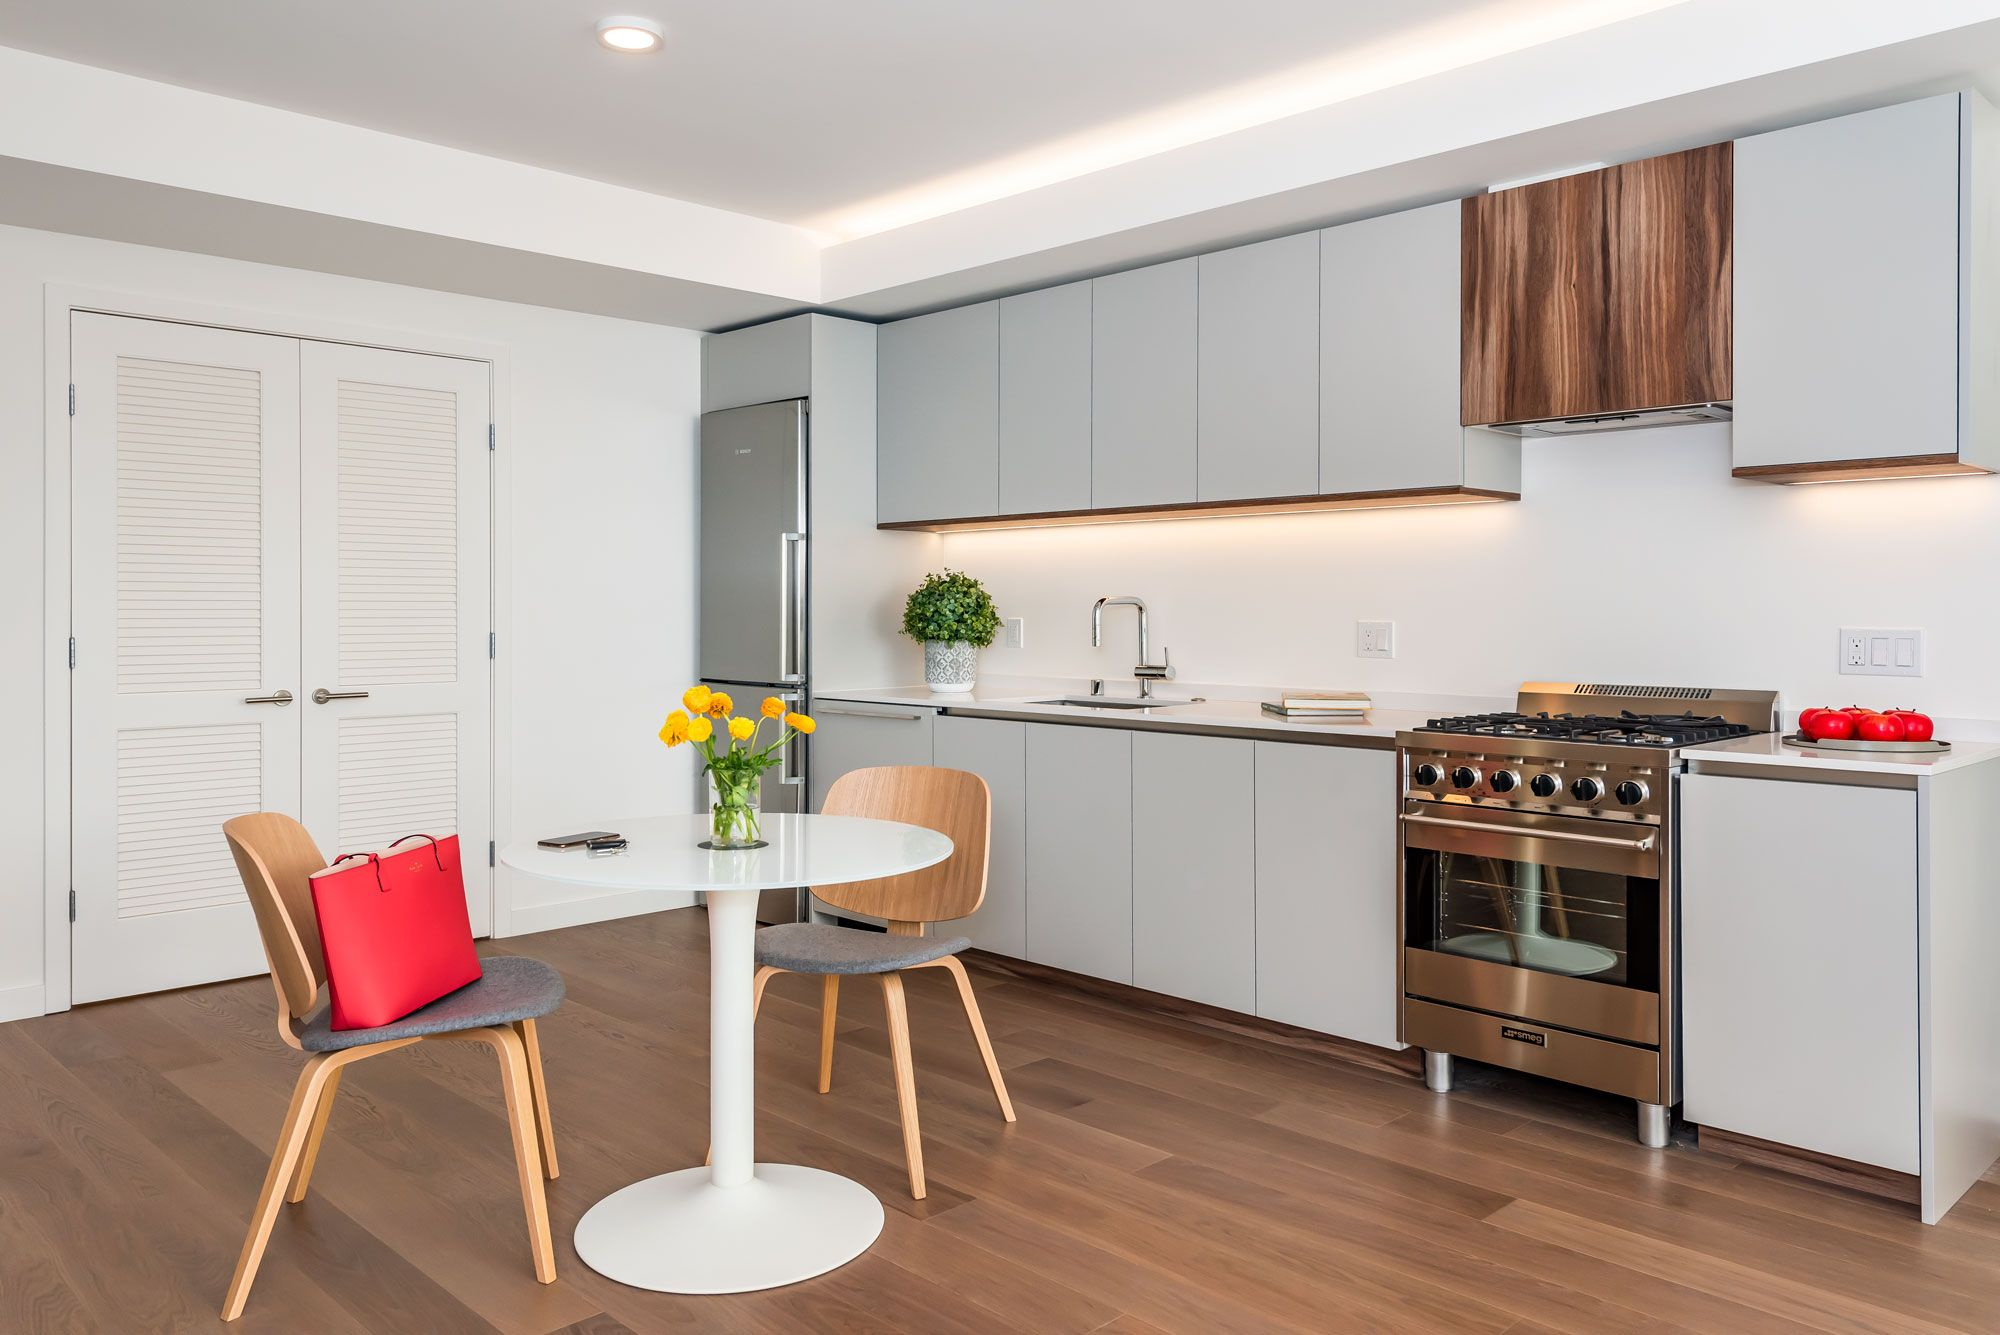 Kitchen featured in the 1D By JS Sullivan Sales | Marketing  in San Francisco, CA